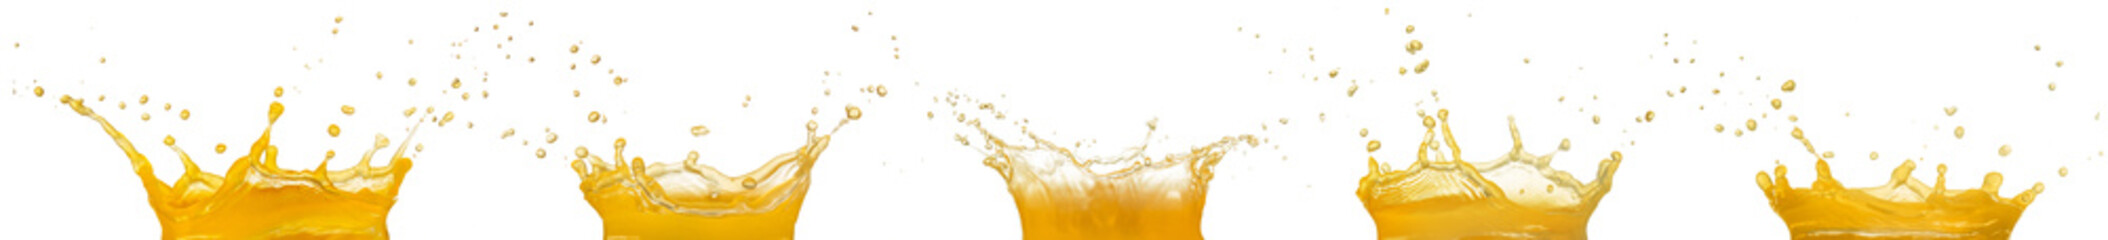 Wall Mural - orange juice splashes collection, isolated on white